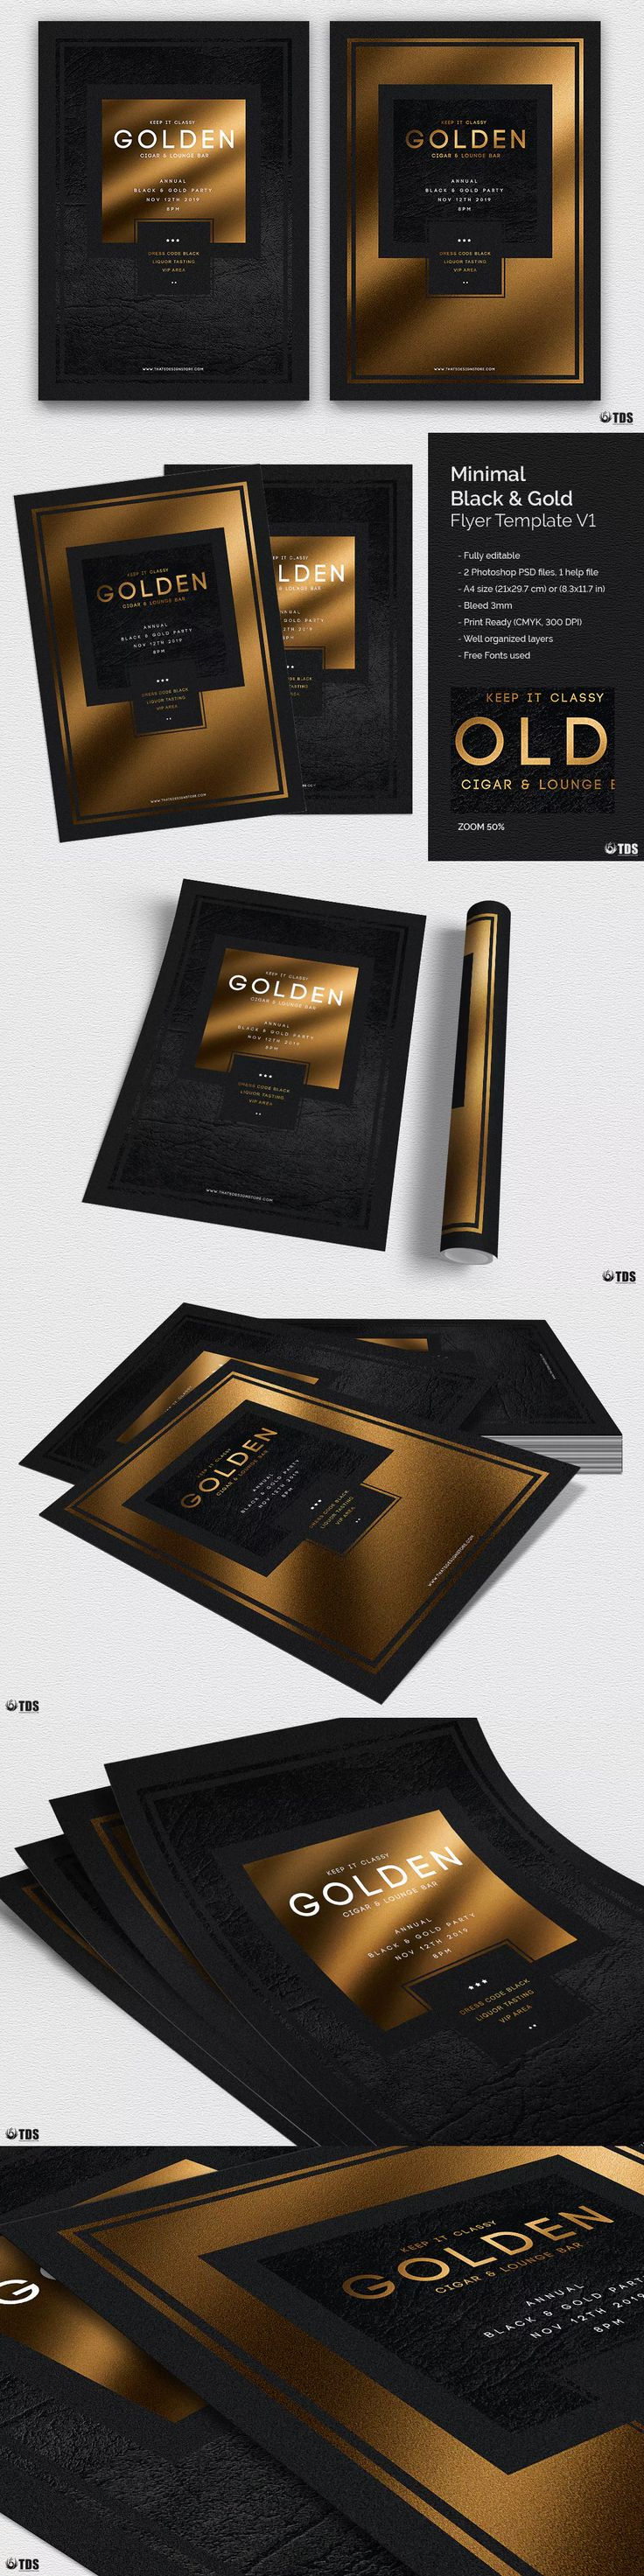 Minimal Black and Gold Flyer Template PSD